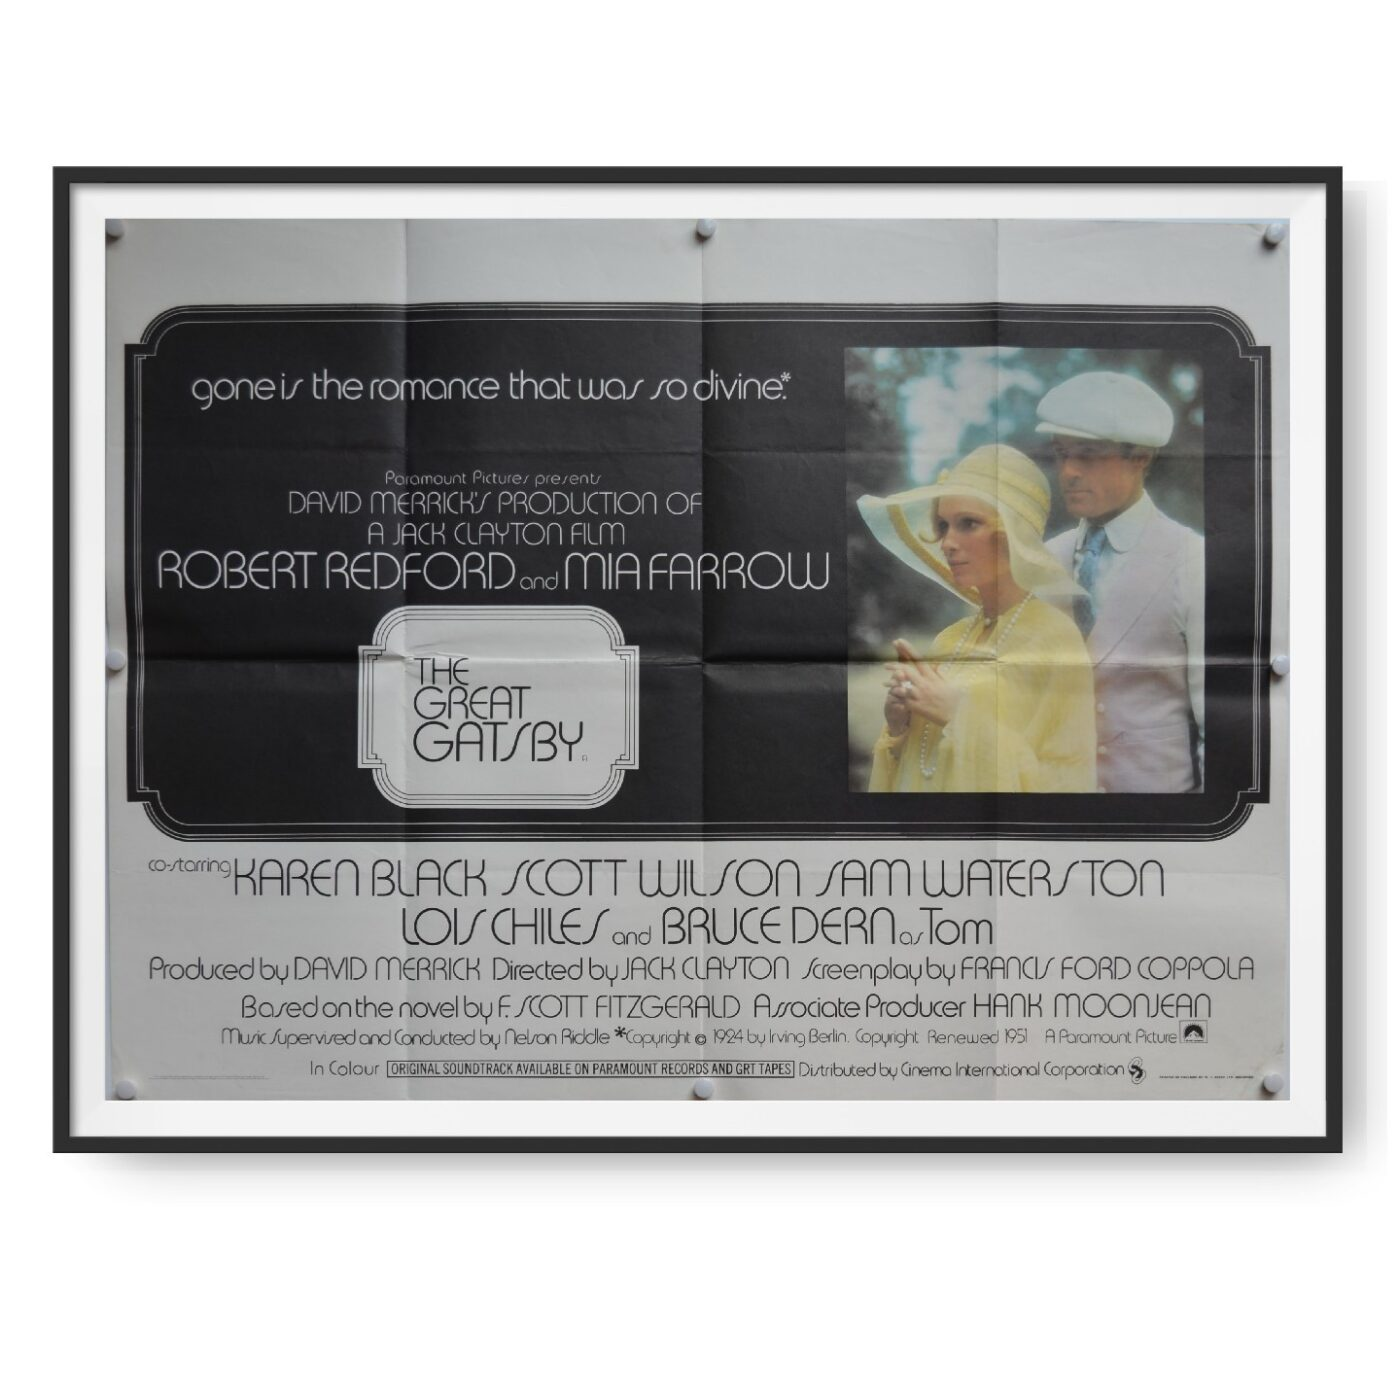 Picture shows a UK Quad poster for a 1974 release of the Great Gatsby. Robert Redford and Mia Farrow can be seen on th poster.